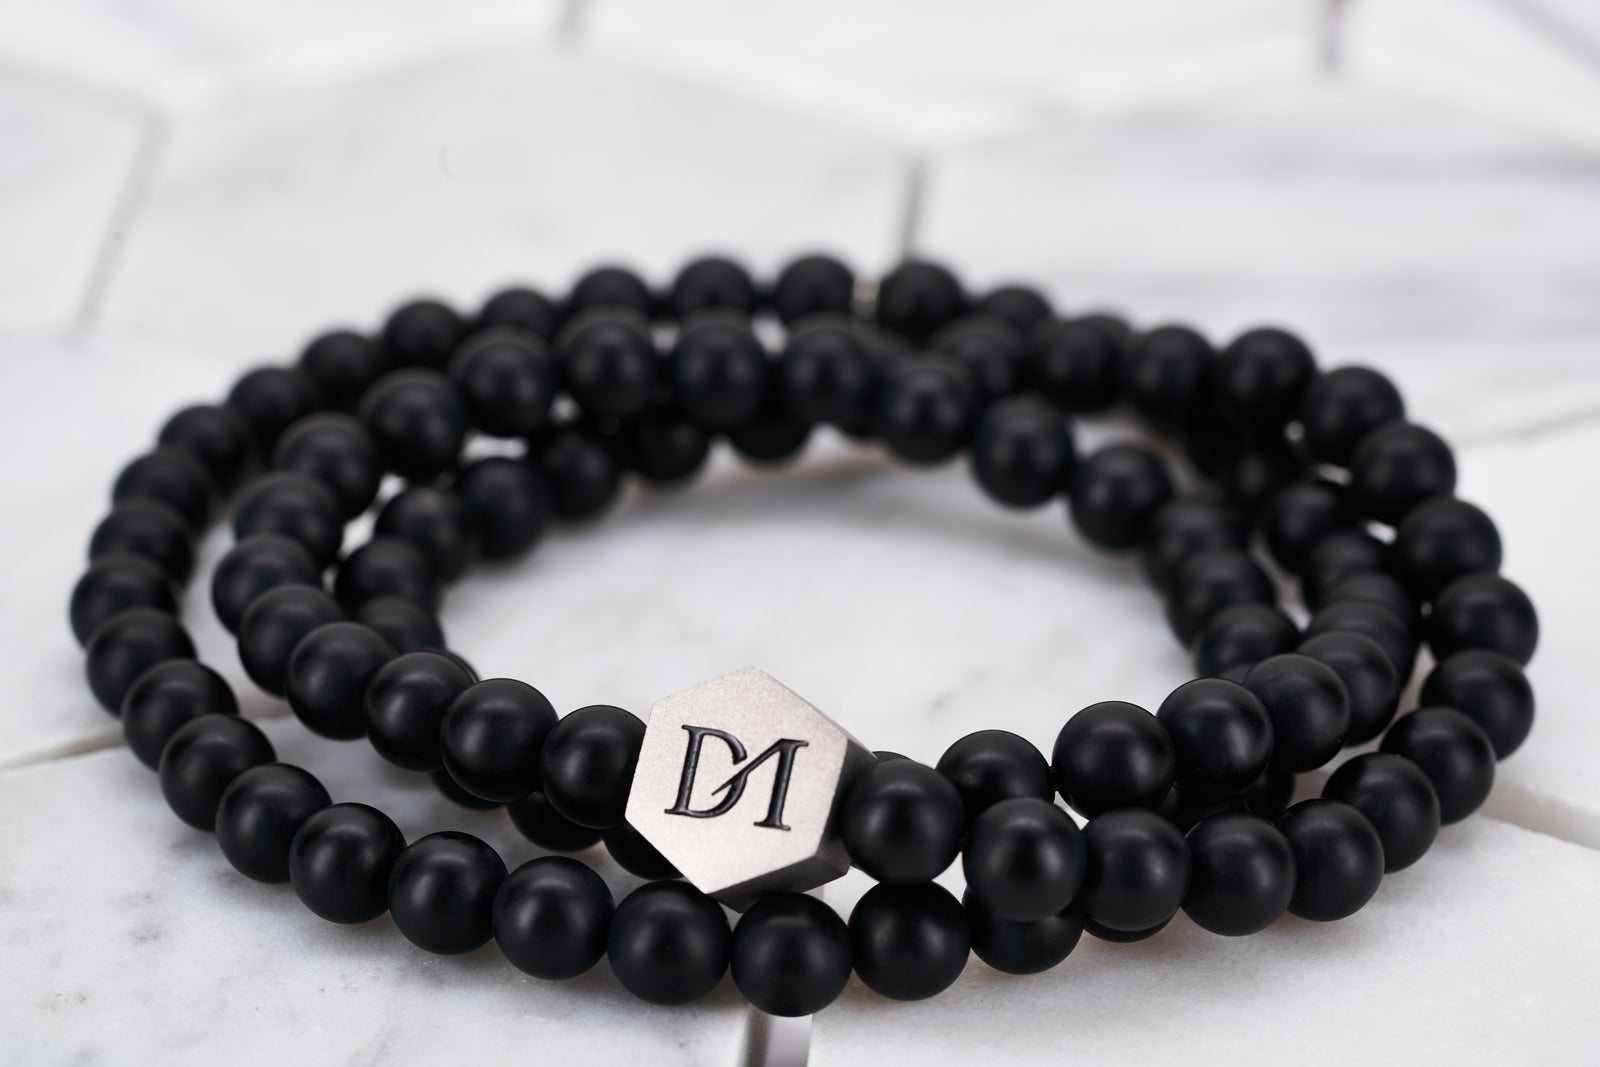 An image of a wrap bracelet made by Dear Martian Brooklyn constructed with matte black obsidian stones that can wrap around the wrist multiple times.